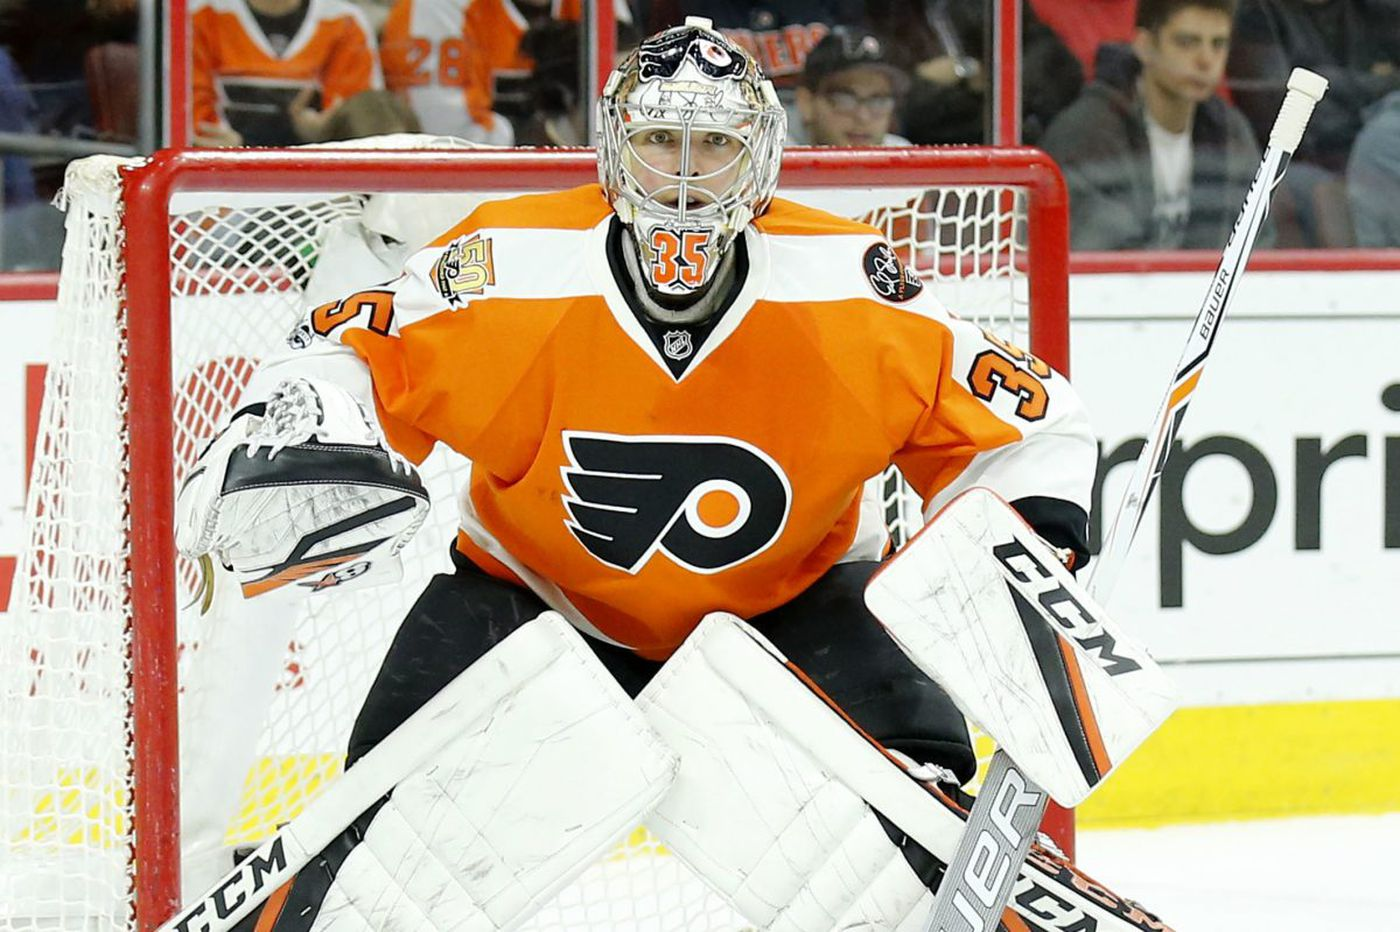 Steve Mason's career with Flyers appears to have ended